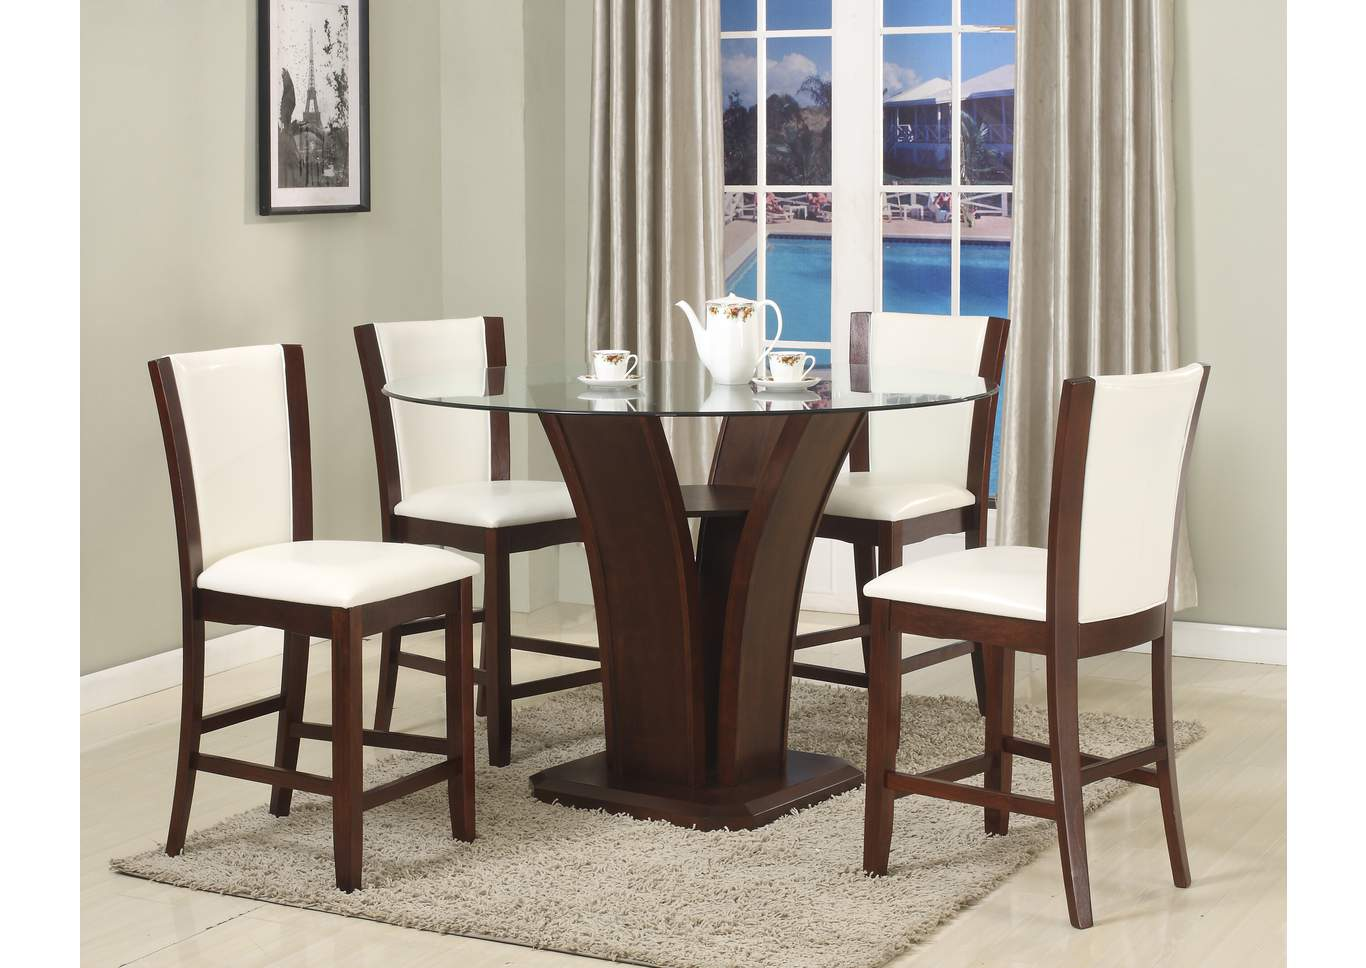 Merveilleux Camelia Counter Height Dining Room Table W/4 White Counter Height Chairs,Crown  Mark